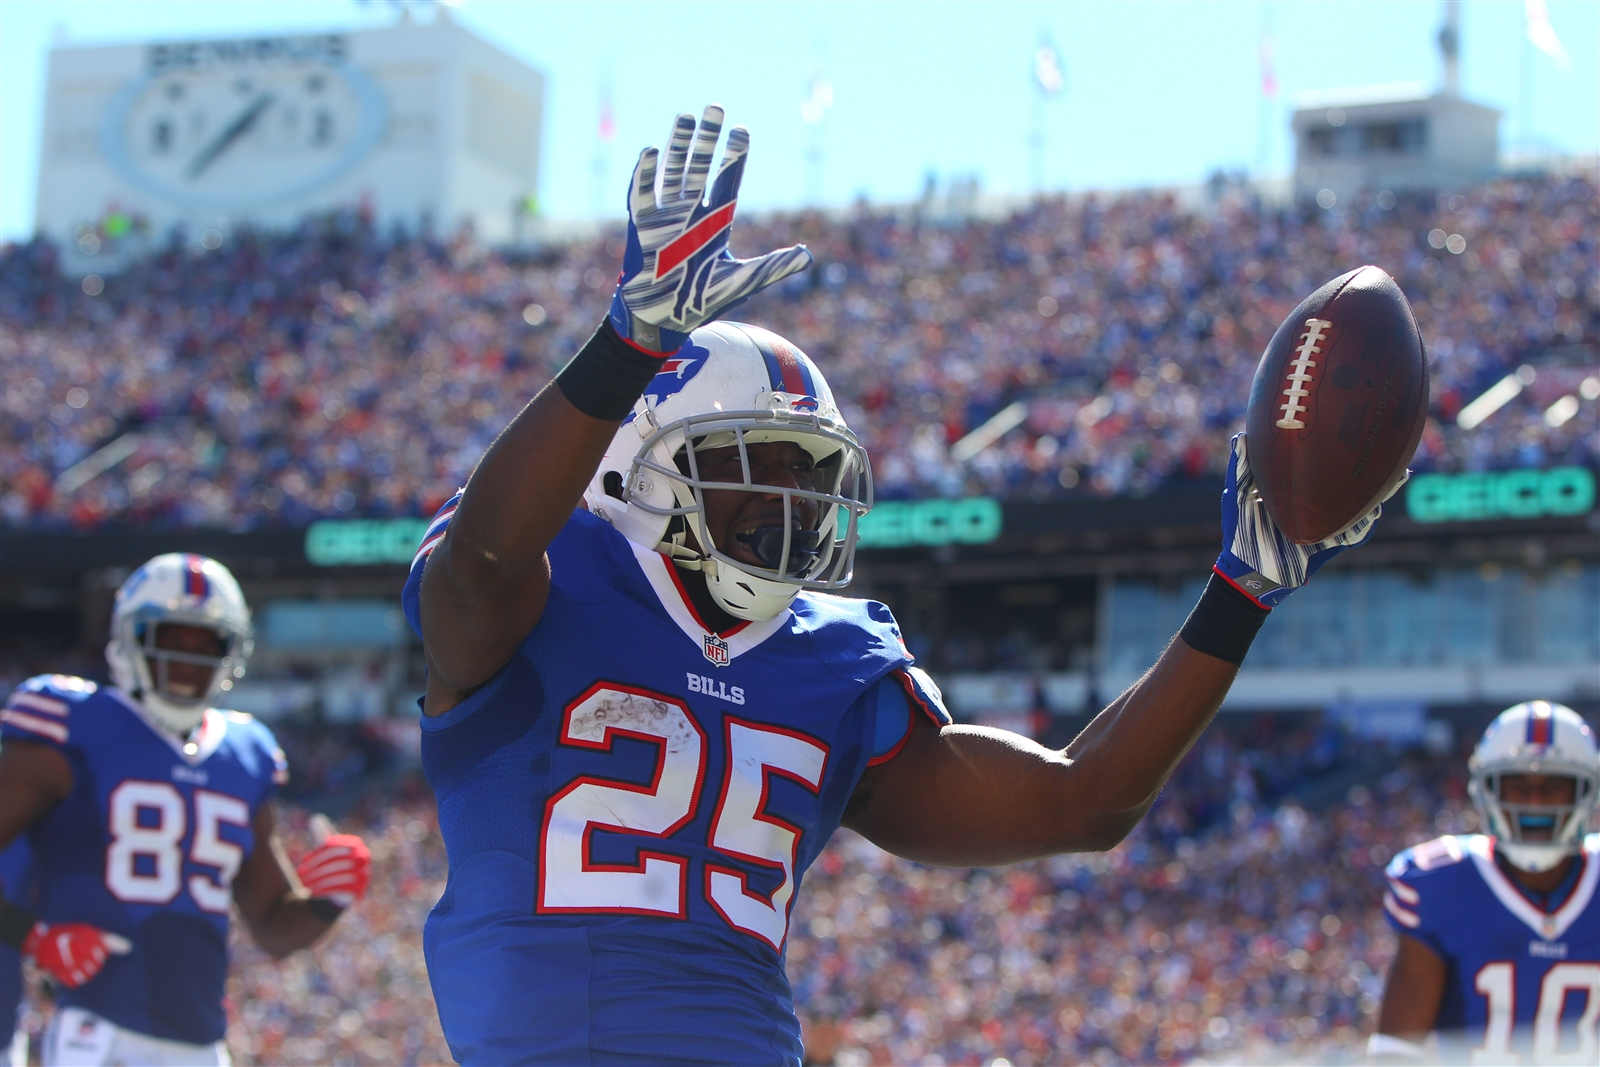 Buffalo Bills running back LeSean McCoy celebrates his touchdown in the first quarter.